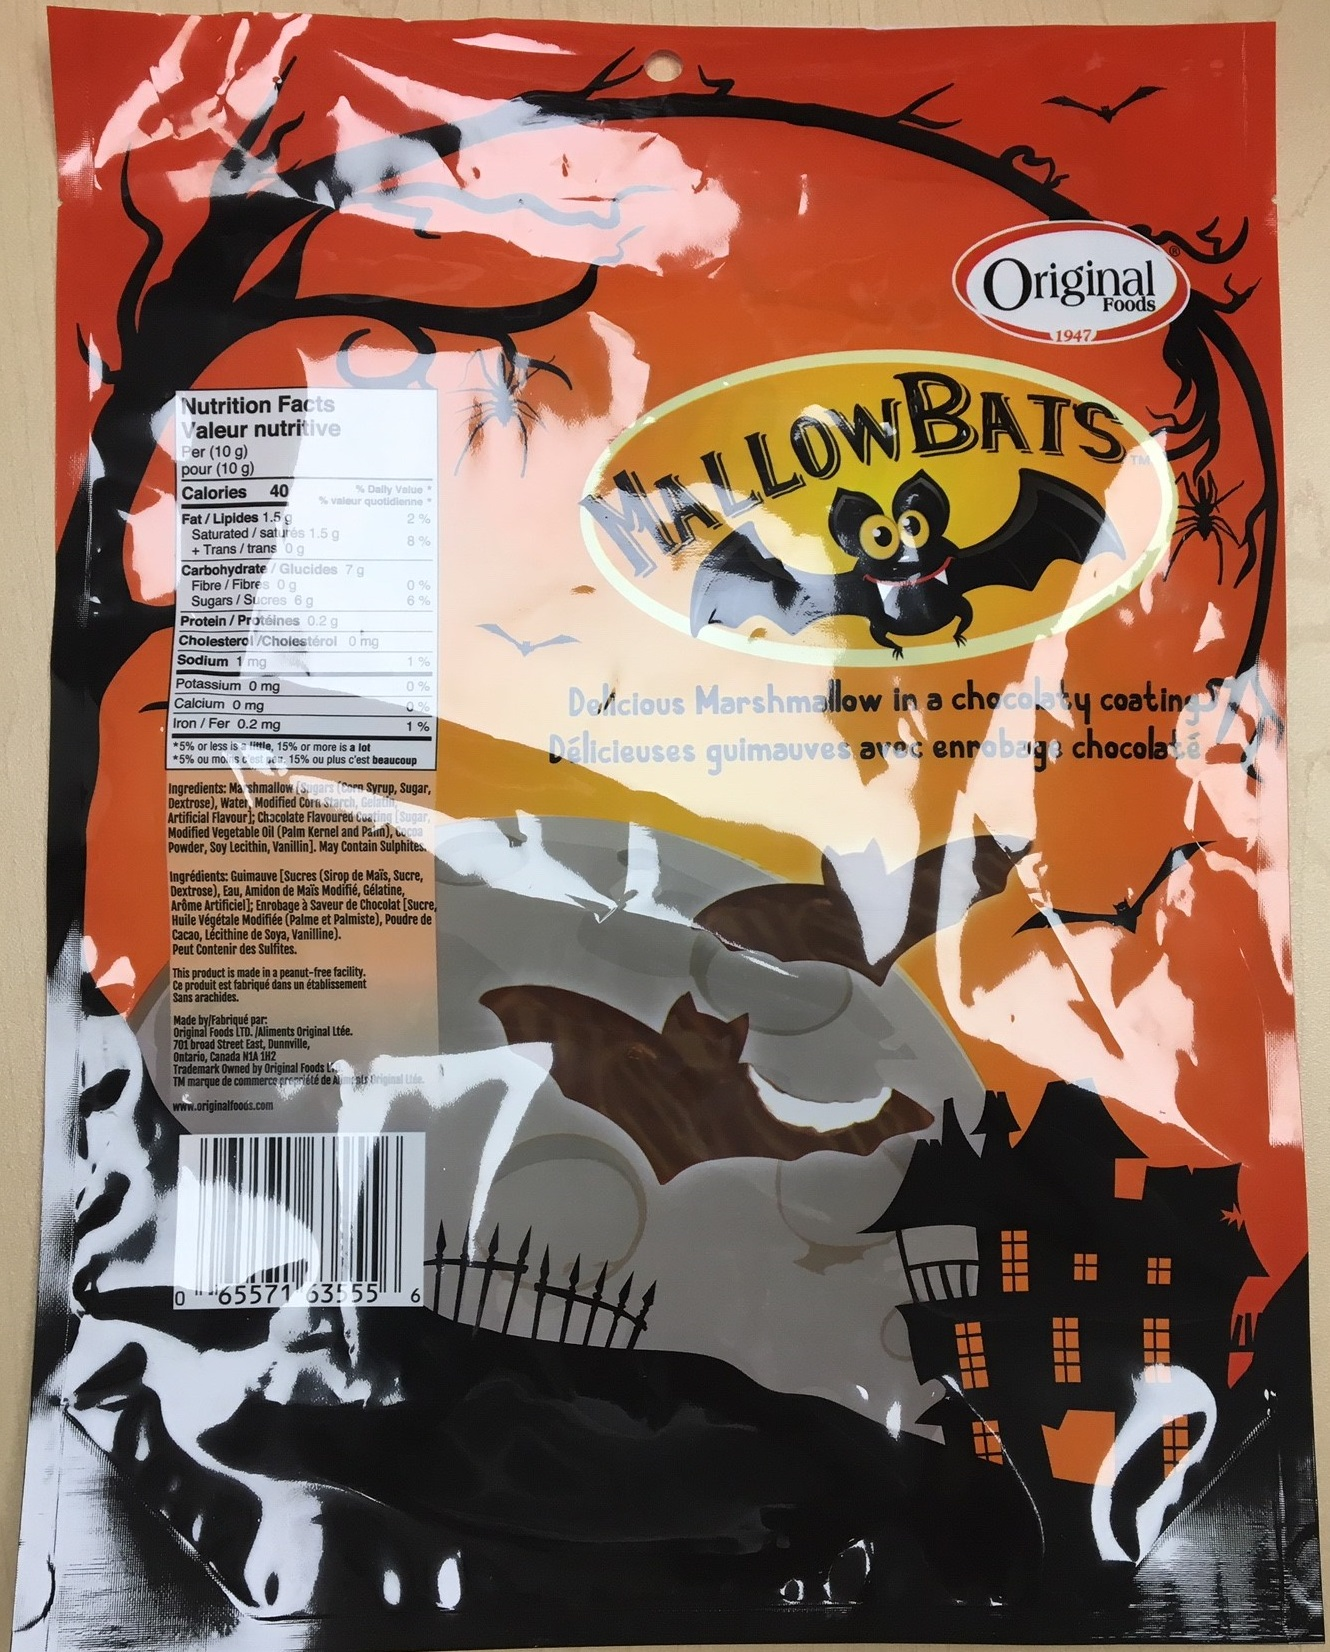 Original Food MallowBats, 250grams - back of packaging